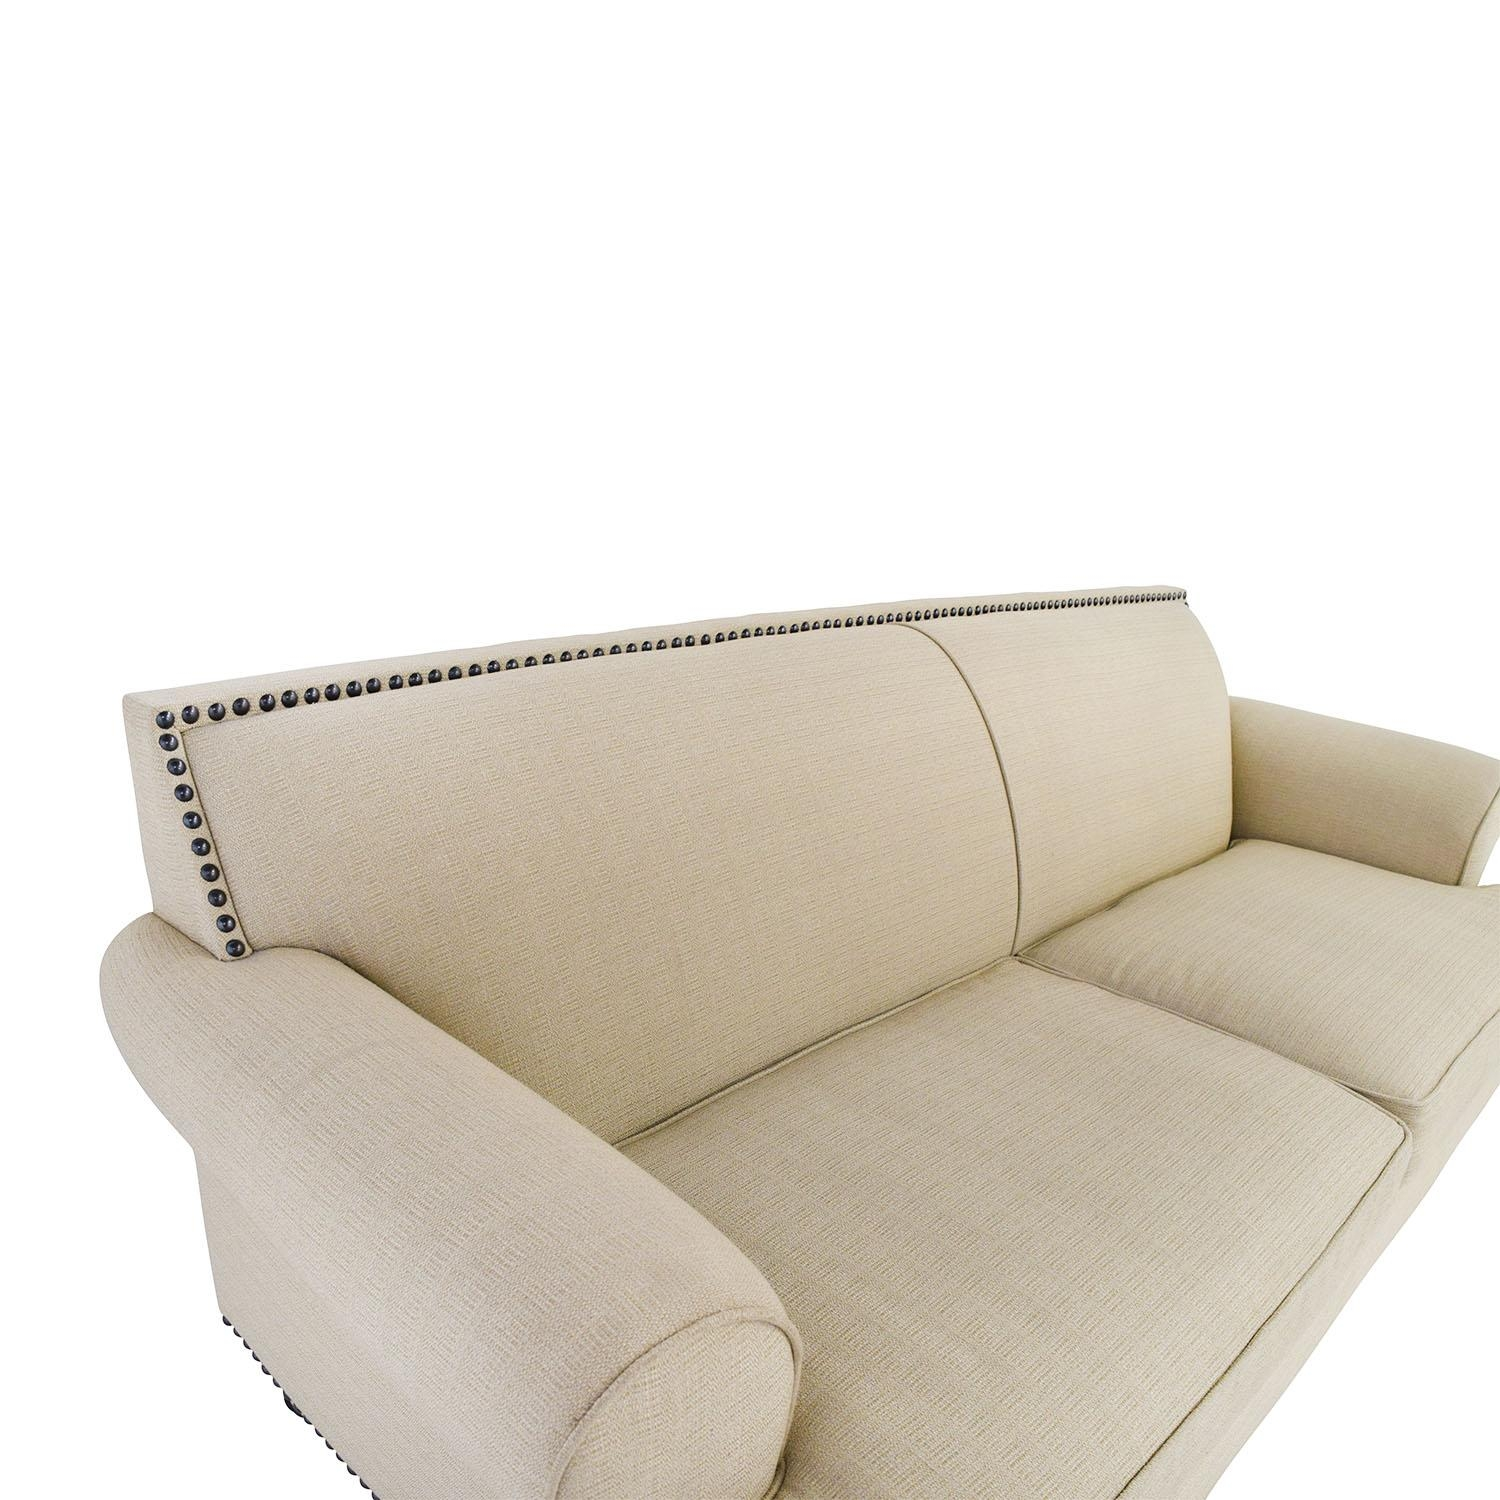 48% Off - Pier 1 Pier 1 Carmen Tan Couch With Studs / Sofas pertaining to Pier One Carmen Sofas